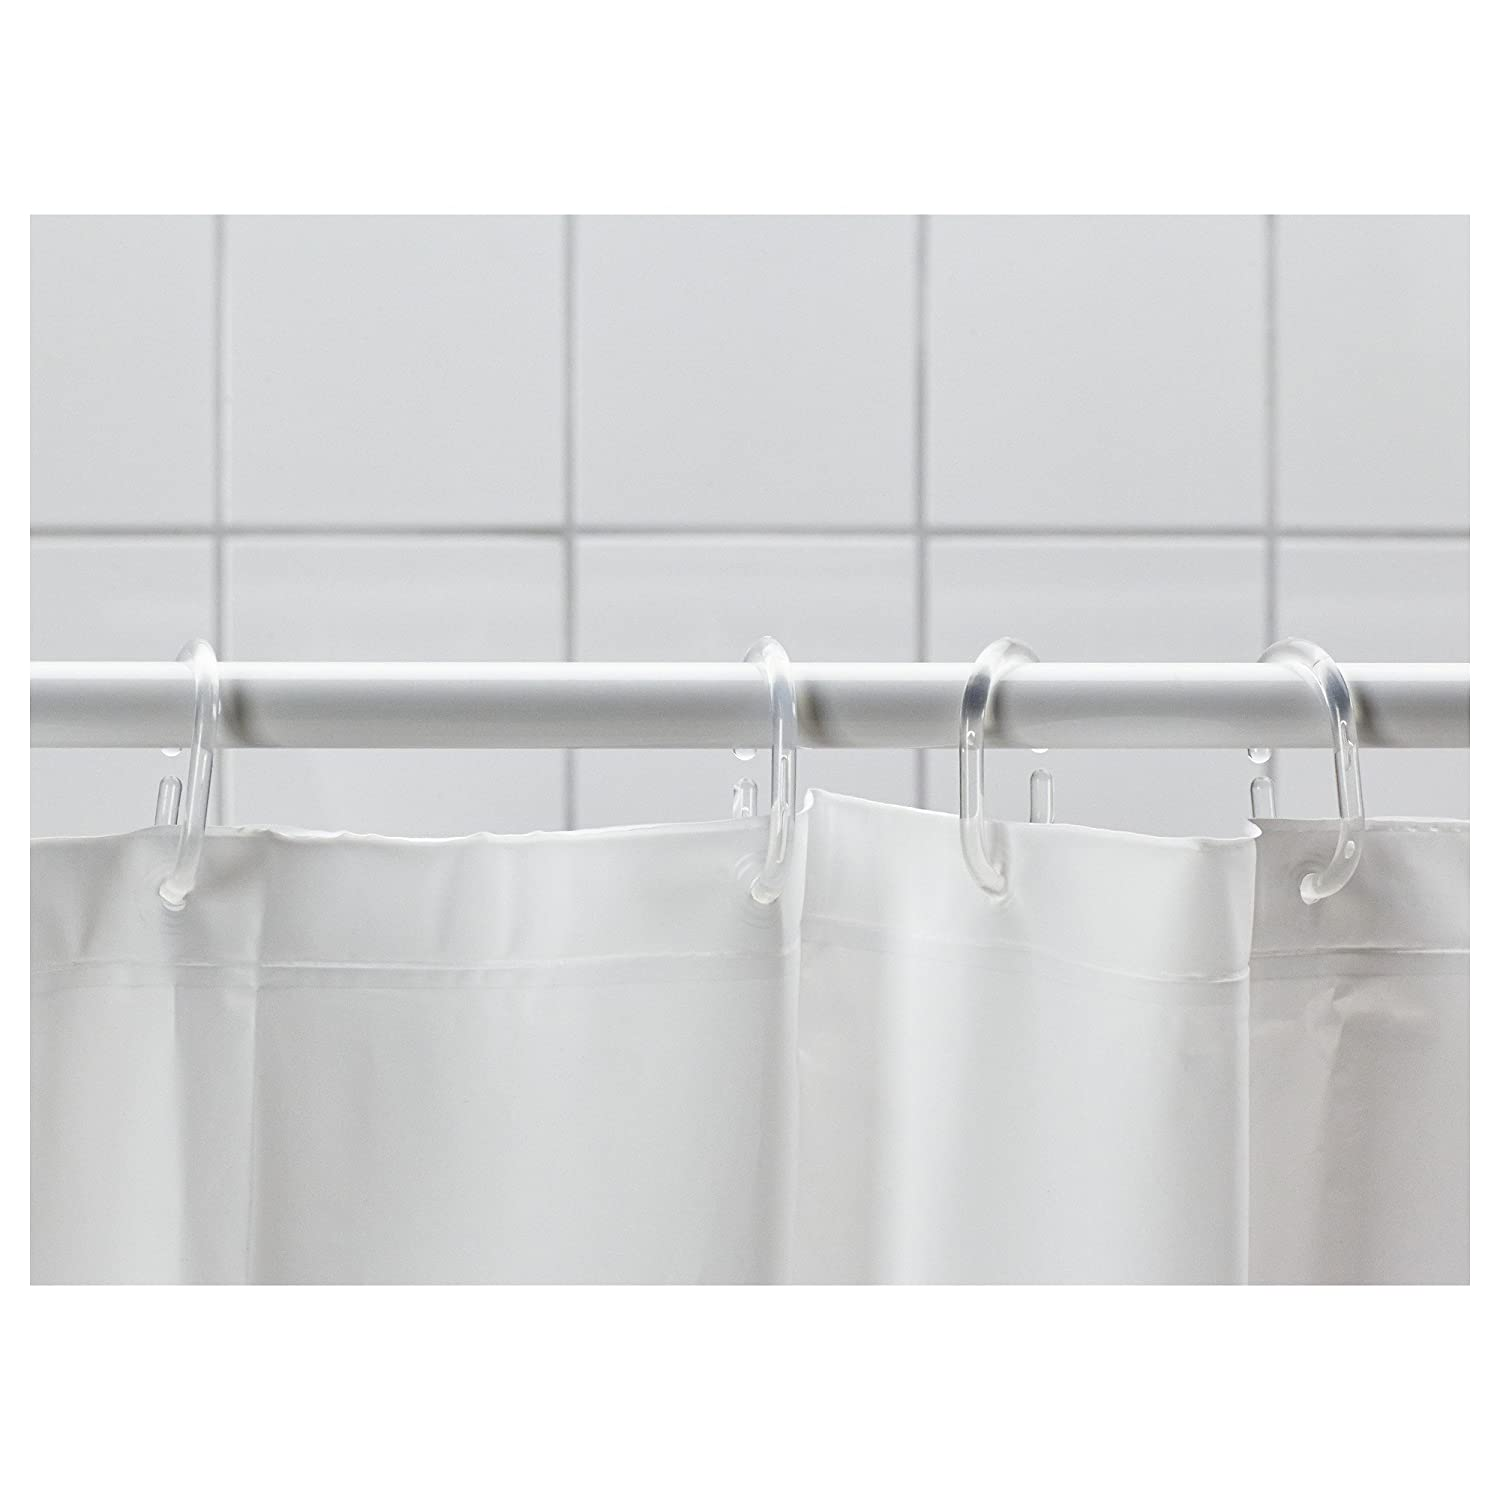 Amazon.com: Ikea Shower Curtain Rings, 12 Pack, Clear: Home & Kitchen